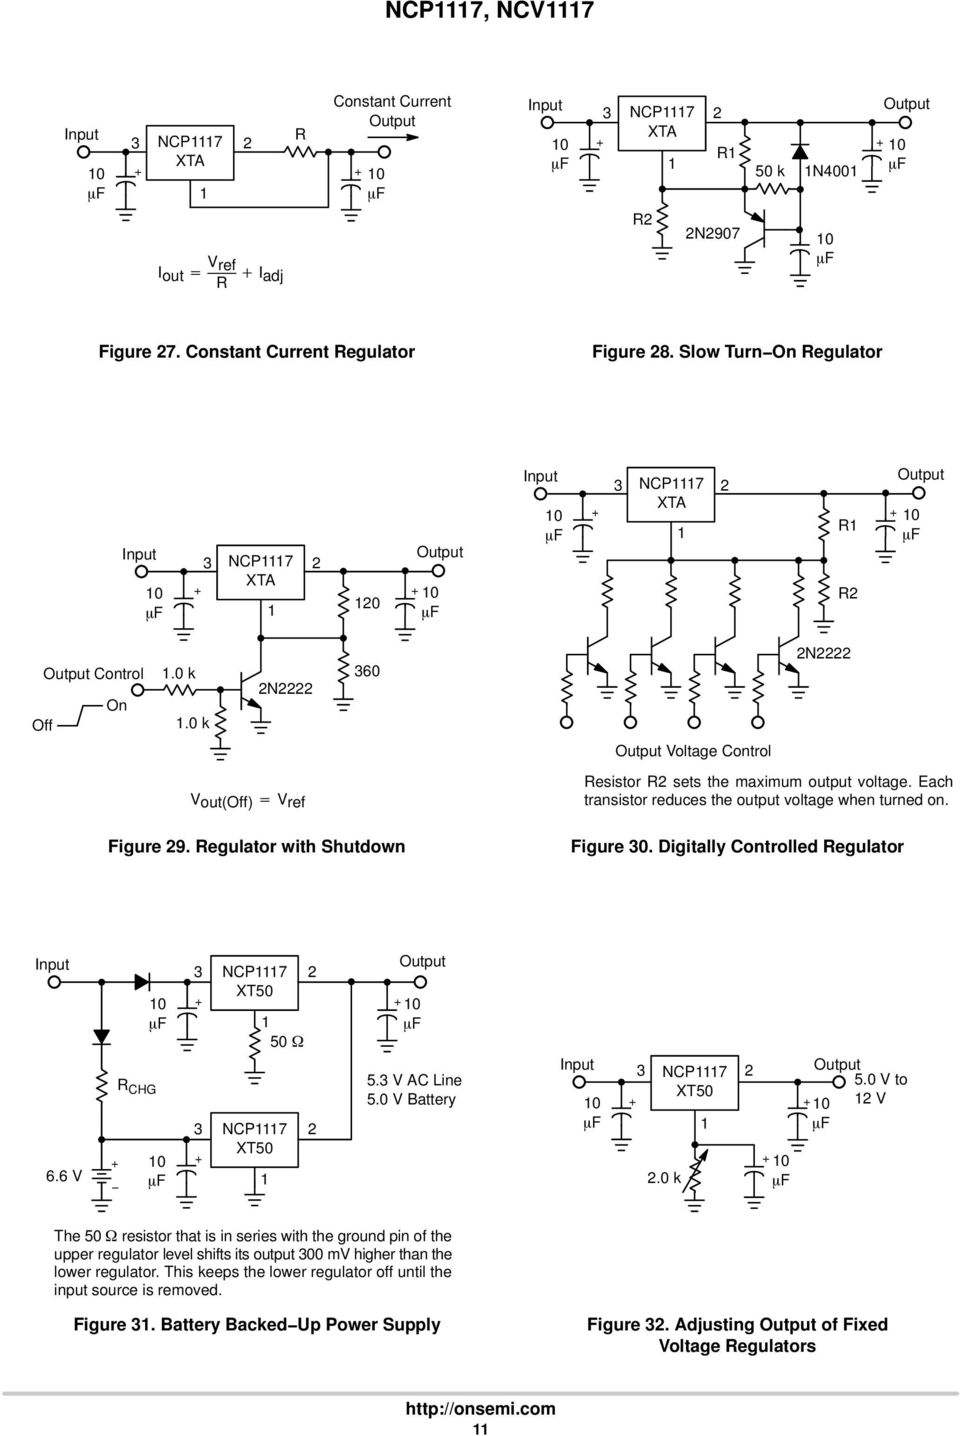 Regulator with Shutdown Resistor R sets the maximum output voltage. Each transistor reduces the output voltage when turned on. Figure 3. Digitally Controlled Regulator 6.